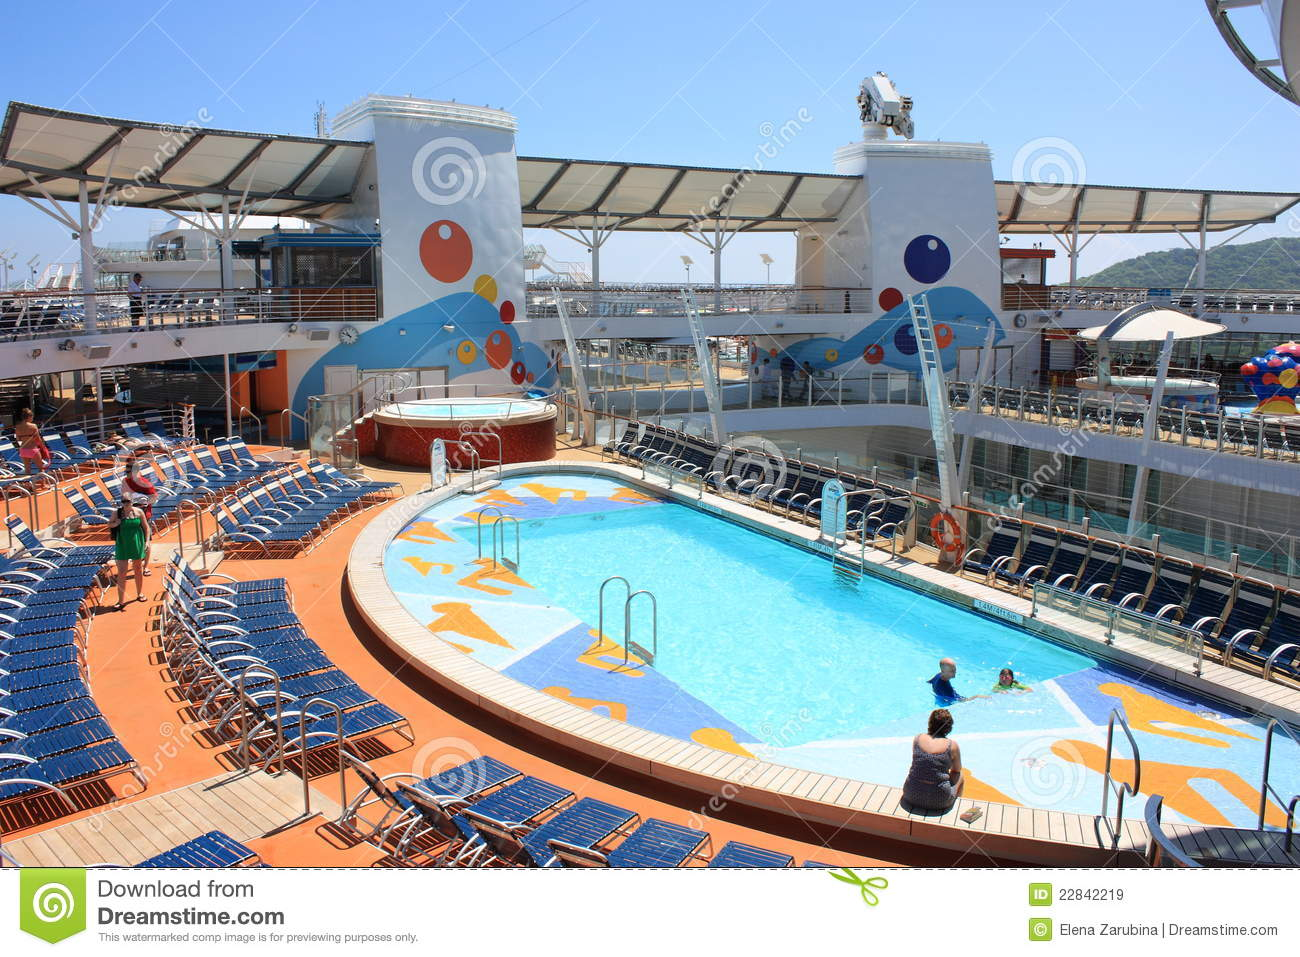 37dd9884b2a The beautiful outdoor sports pool zone on board the biggest cruise ship in  the world Oasis of the seas owned by Royal Caribbean International